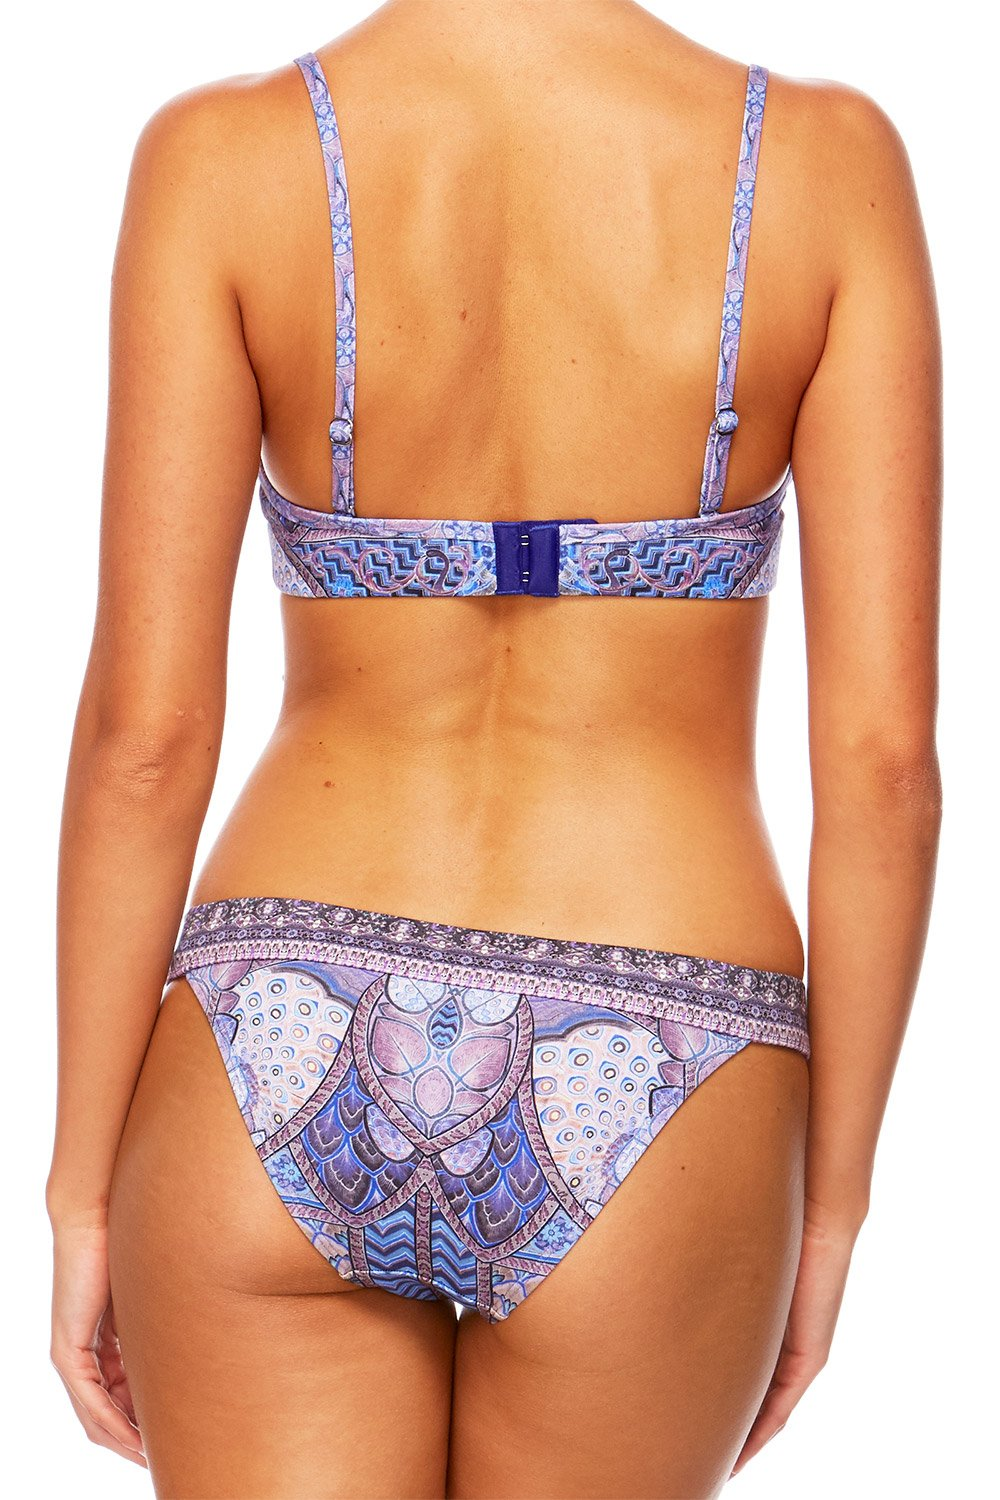 CAMILLA WINGS TO FLY WIDE BAND BRIEF